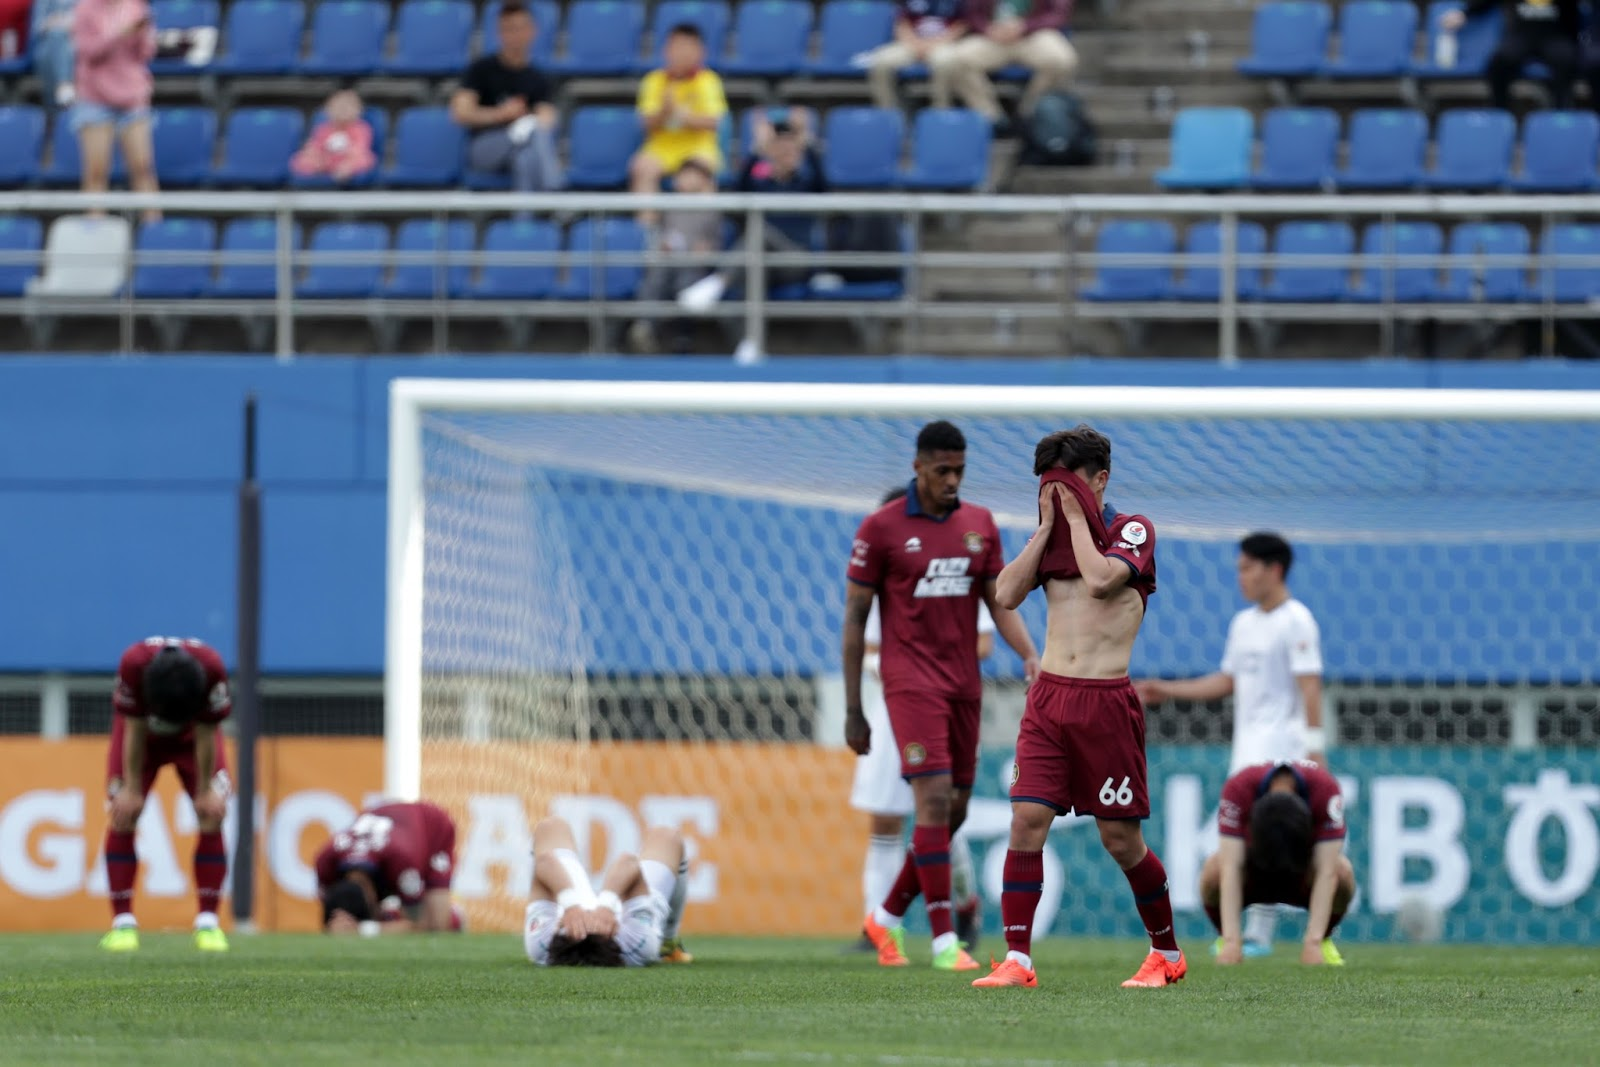 Preview: Suwon FC Vs Daejeon Citizen